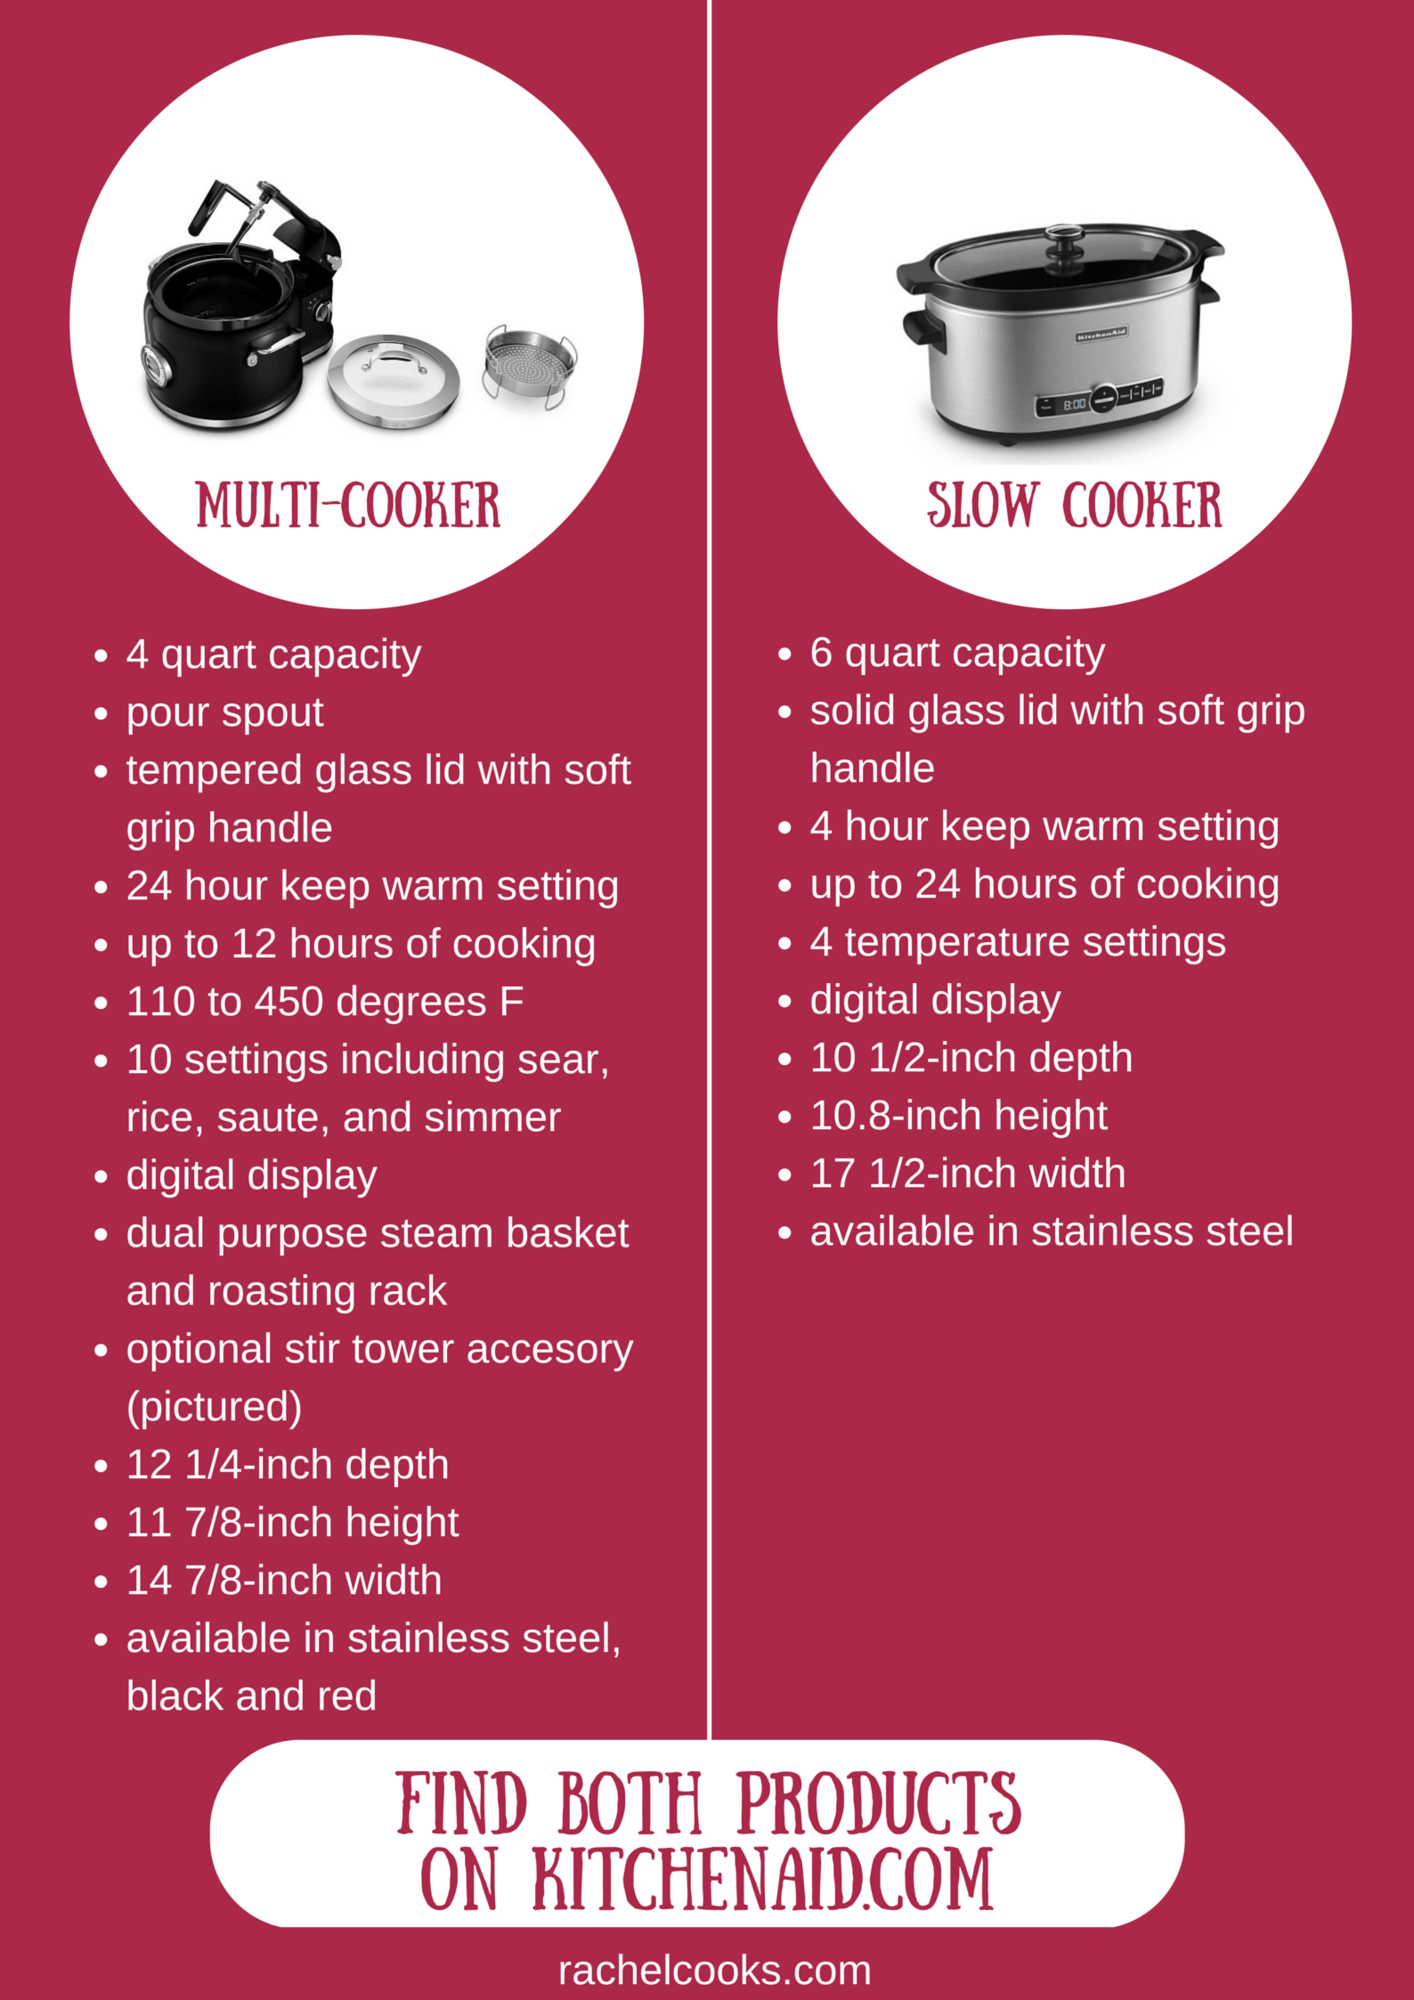 kitchen aid slow cooker hand soap vs. multi-cooker - what's right for you ...